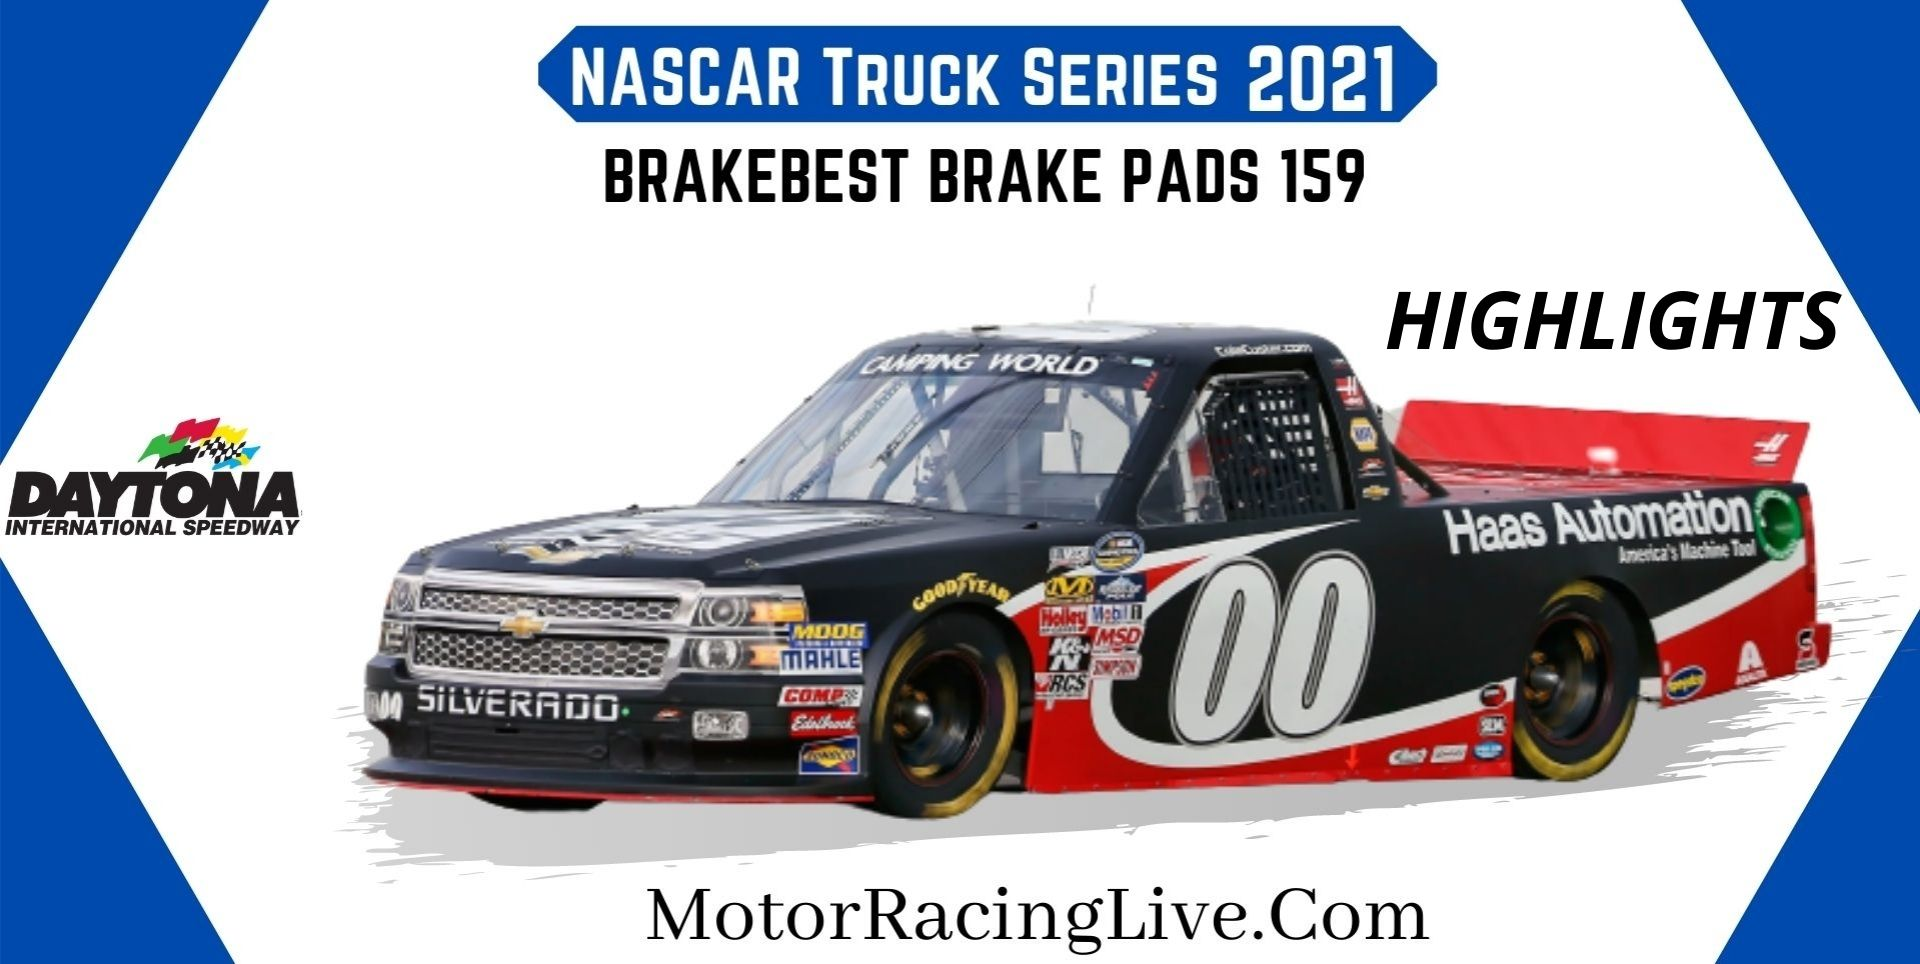 BrakeBest Brake Pads 159 Highlights 2021 NASCAR Truck Series